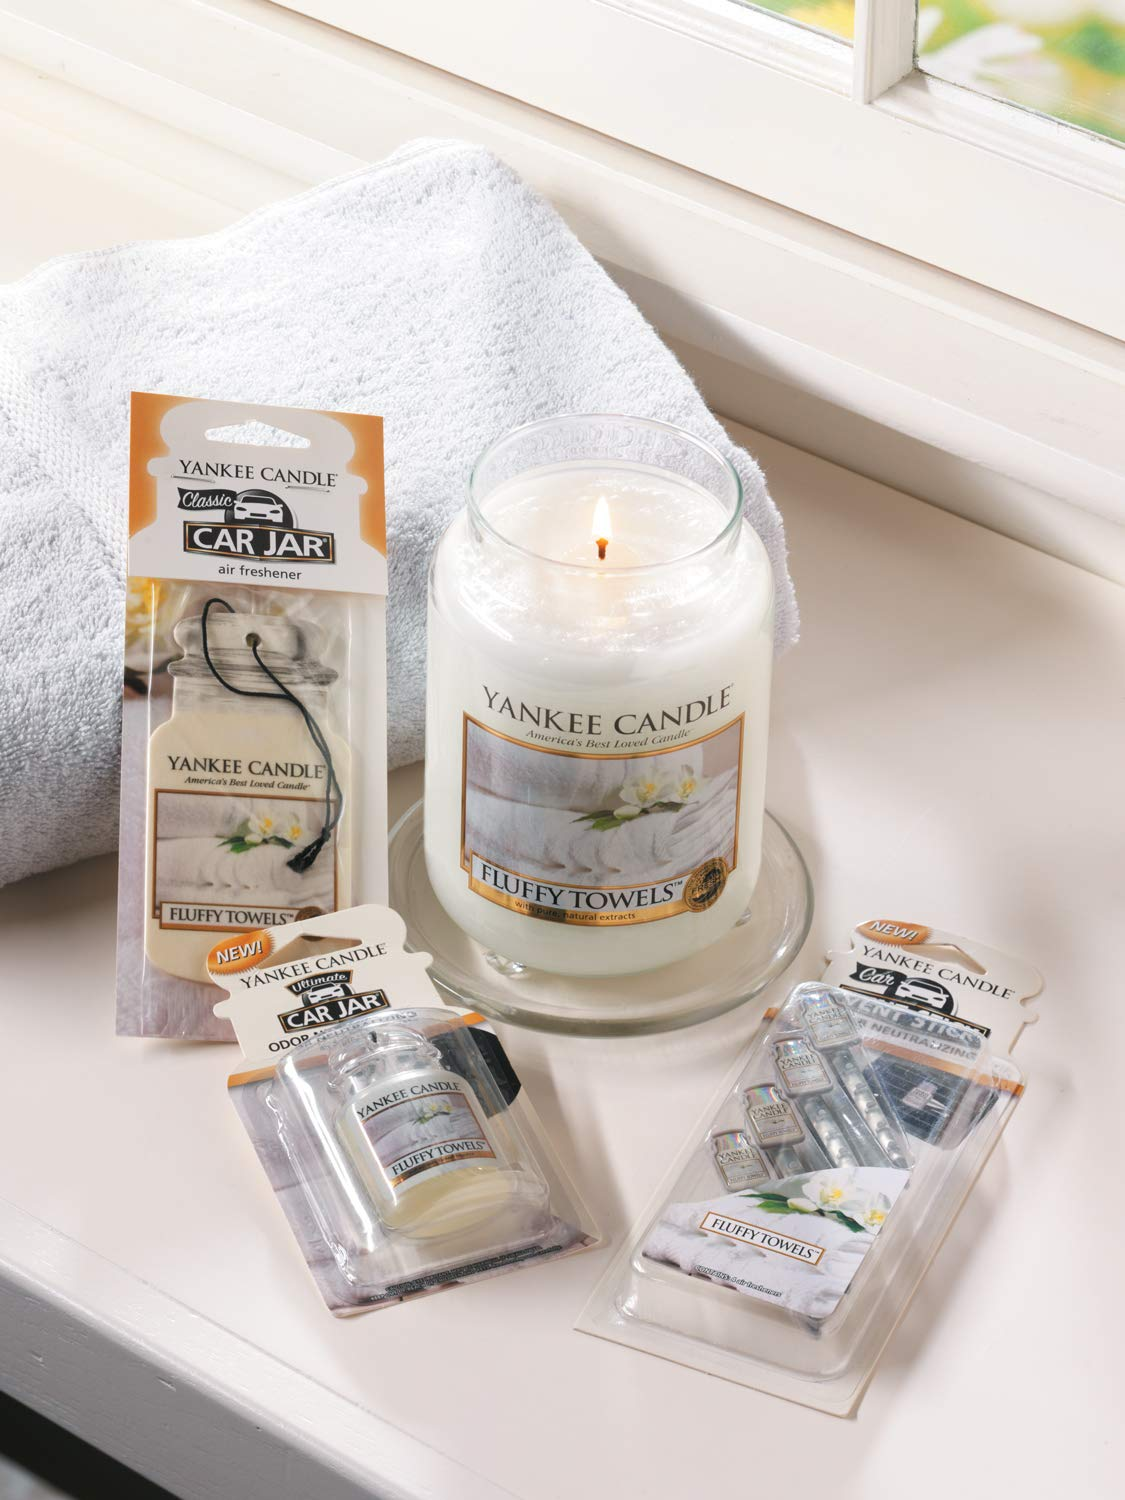 x12 Yankee Candle Tea Light Scented Candle Seaside Woods,